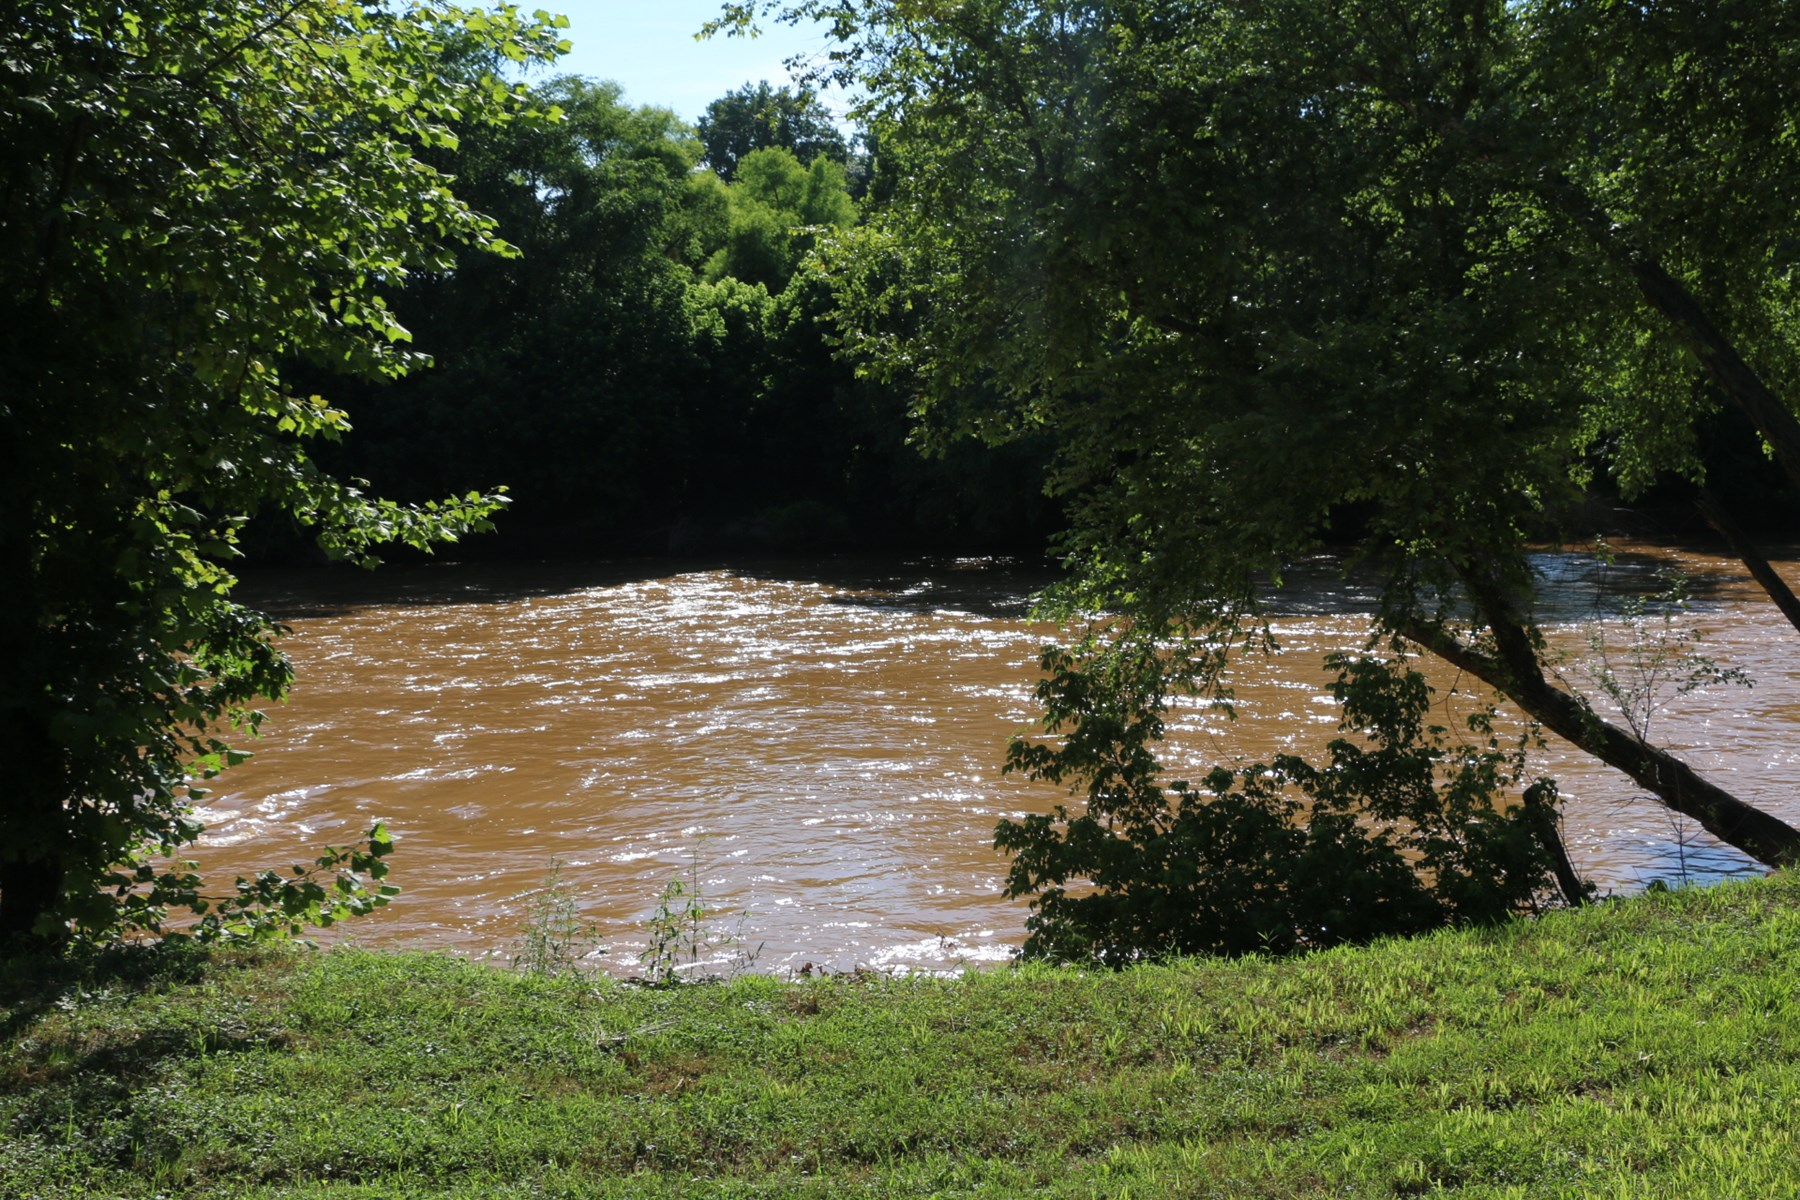 Land for sale in Clemmons NC - Riverfront Land